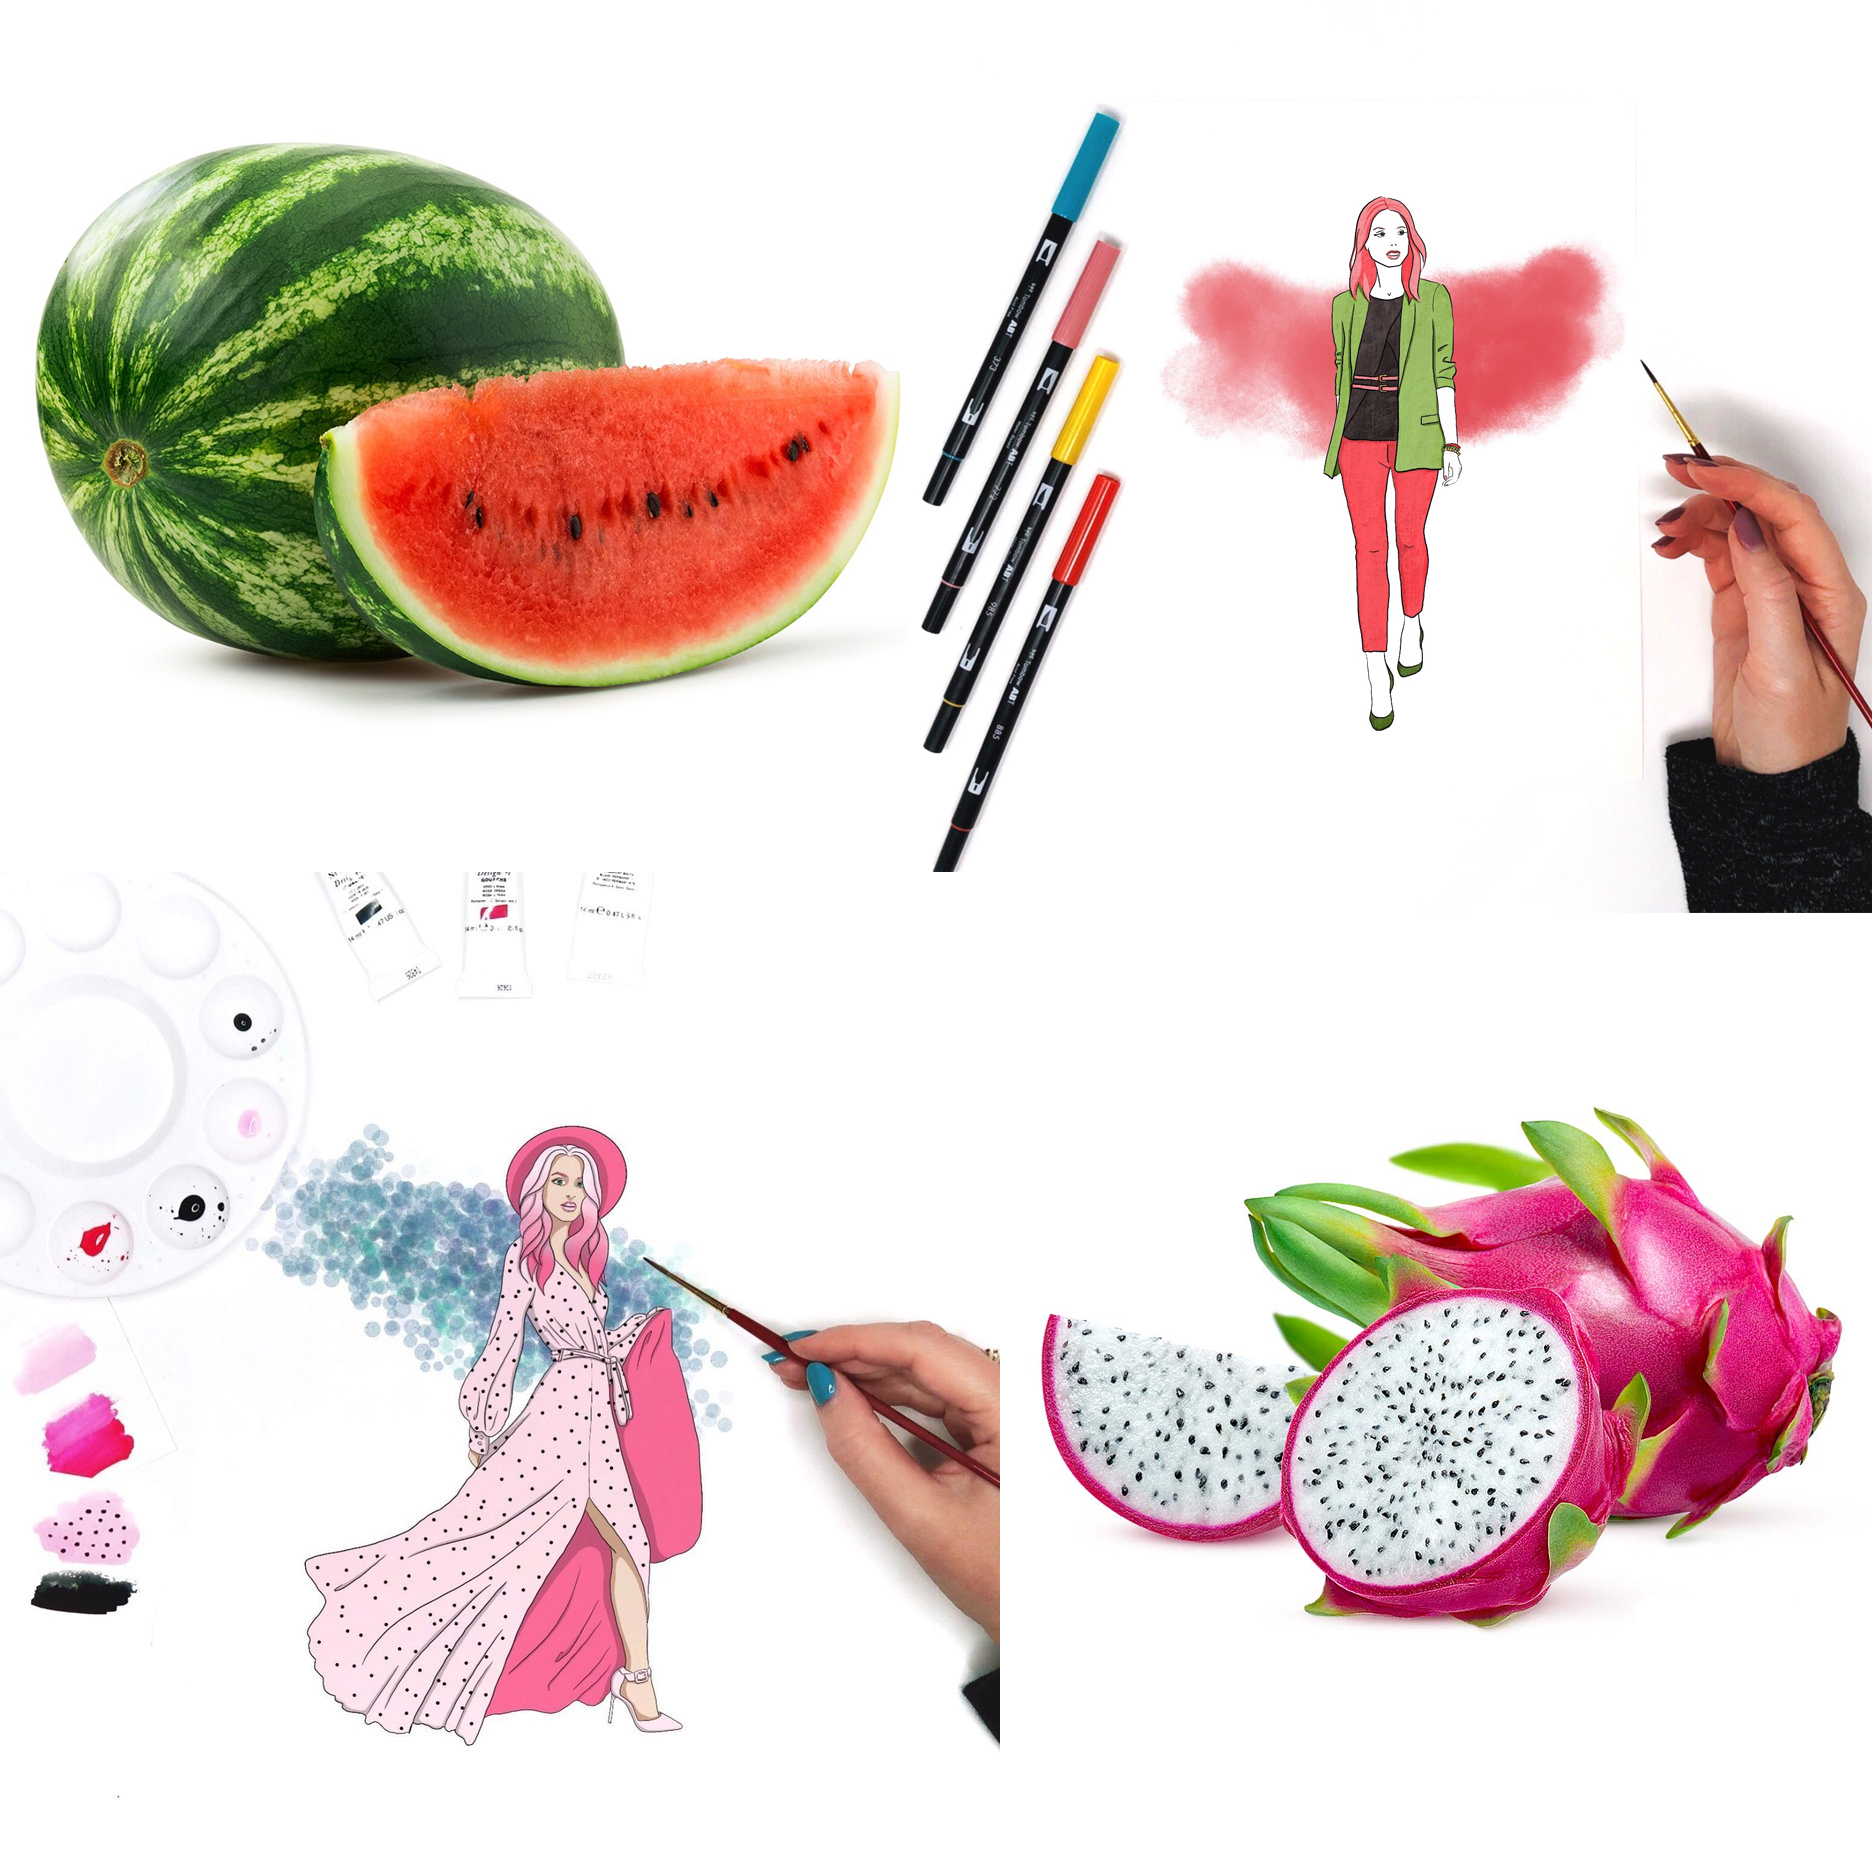 Fashion Illustration Inspired by Food. By Jessica Mack of BrownPaperBunny.